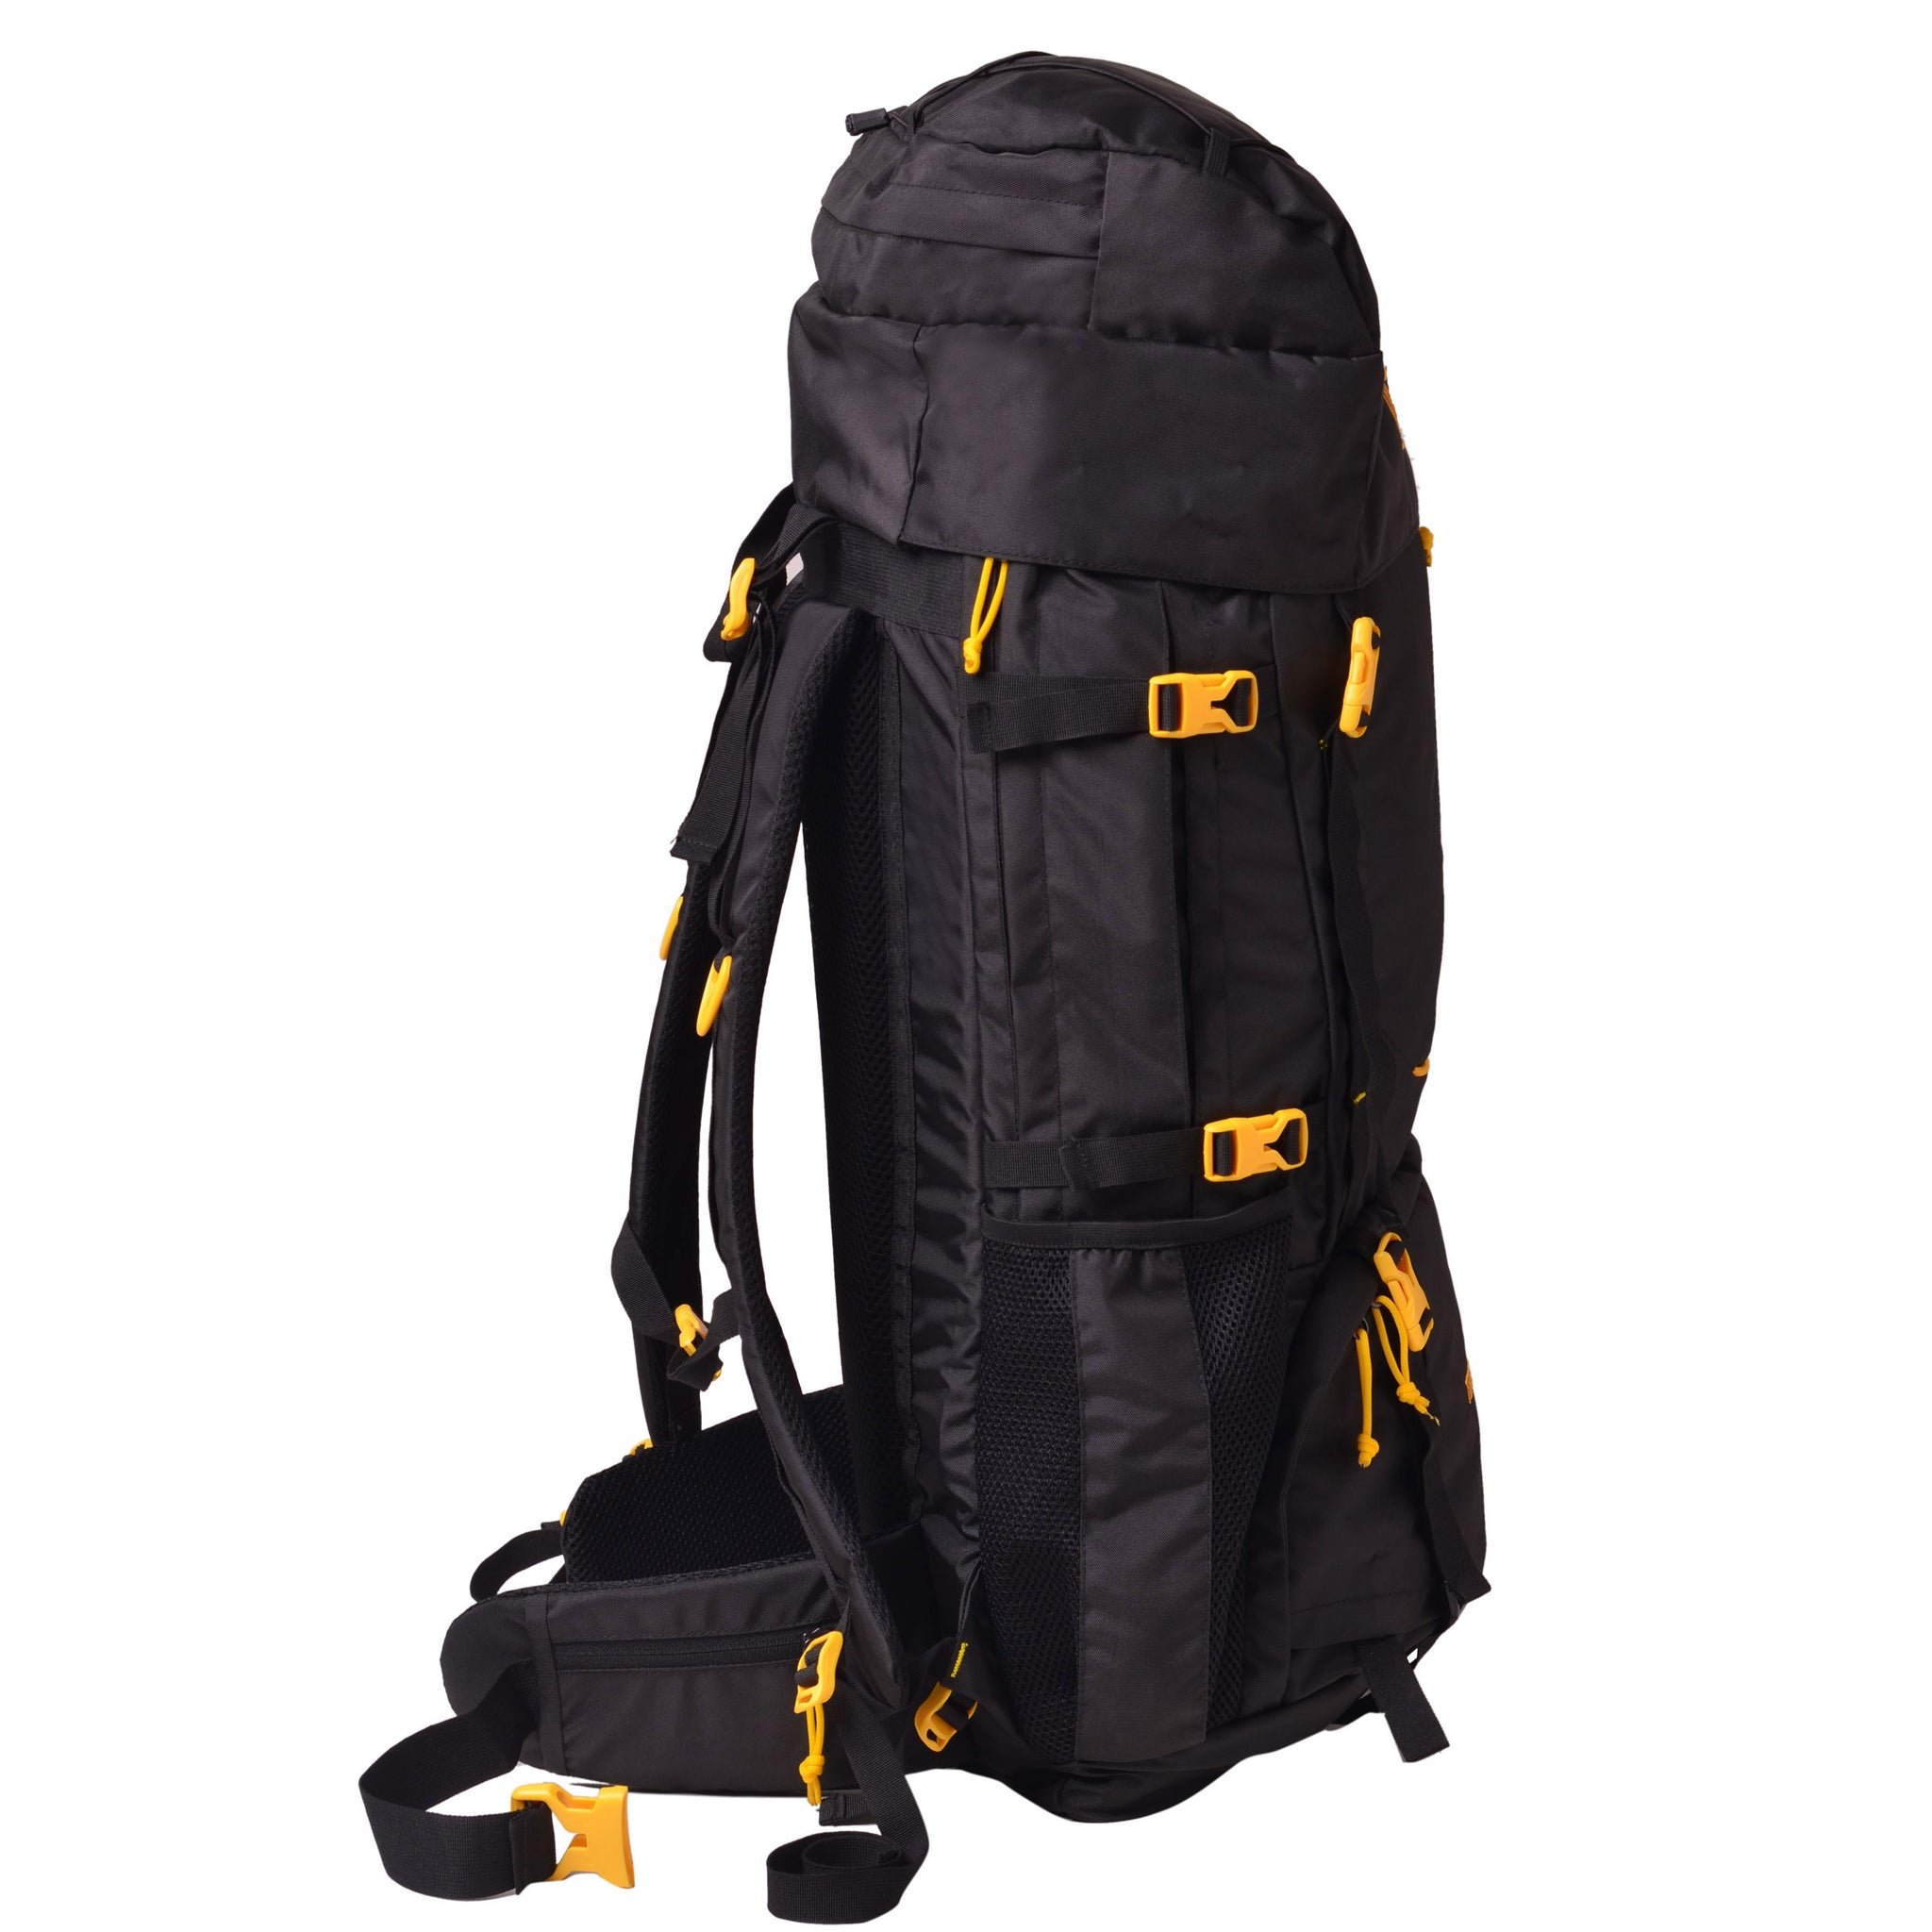 F Gear Terra 80 liter Black Yellow Rucksack (2637)